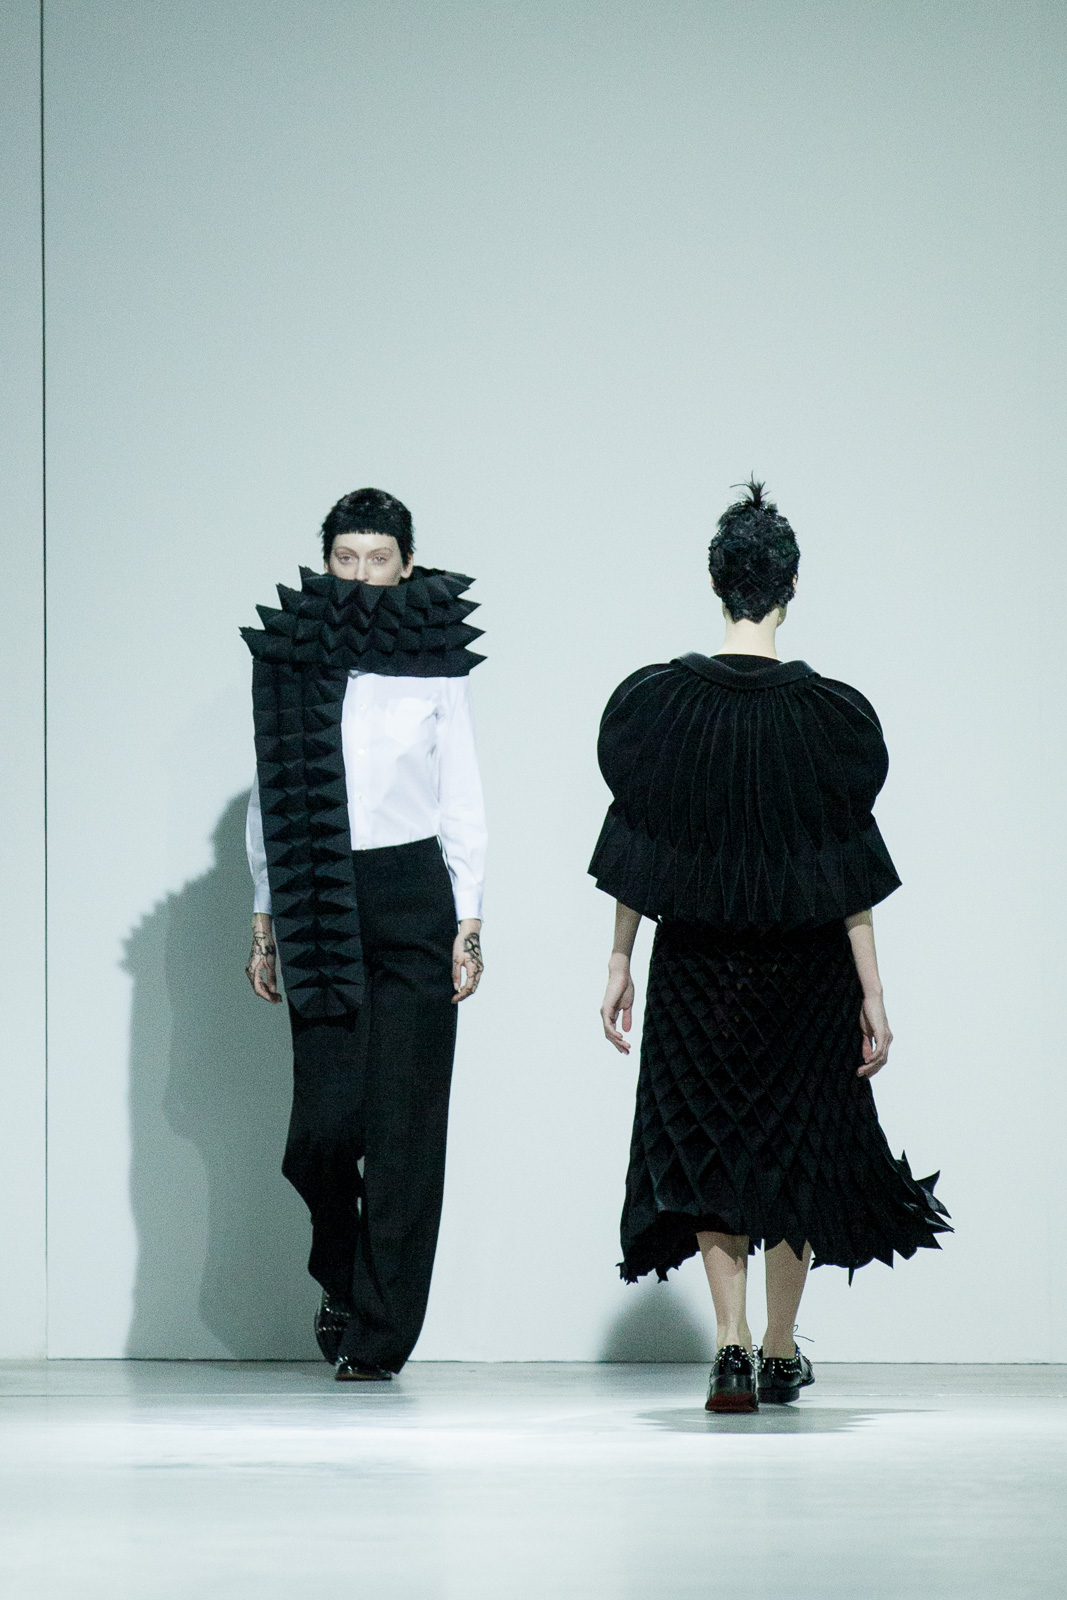 Runway show of Junya Watanabe as part of the Paris Fashion Week Womenswear Fall/Winter 2015/16 at Palais de Tokyo on March 7, 2015 in Paris, France.